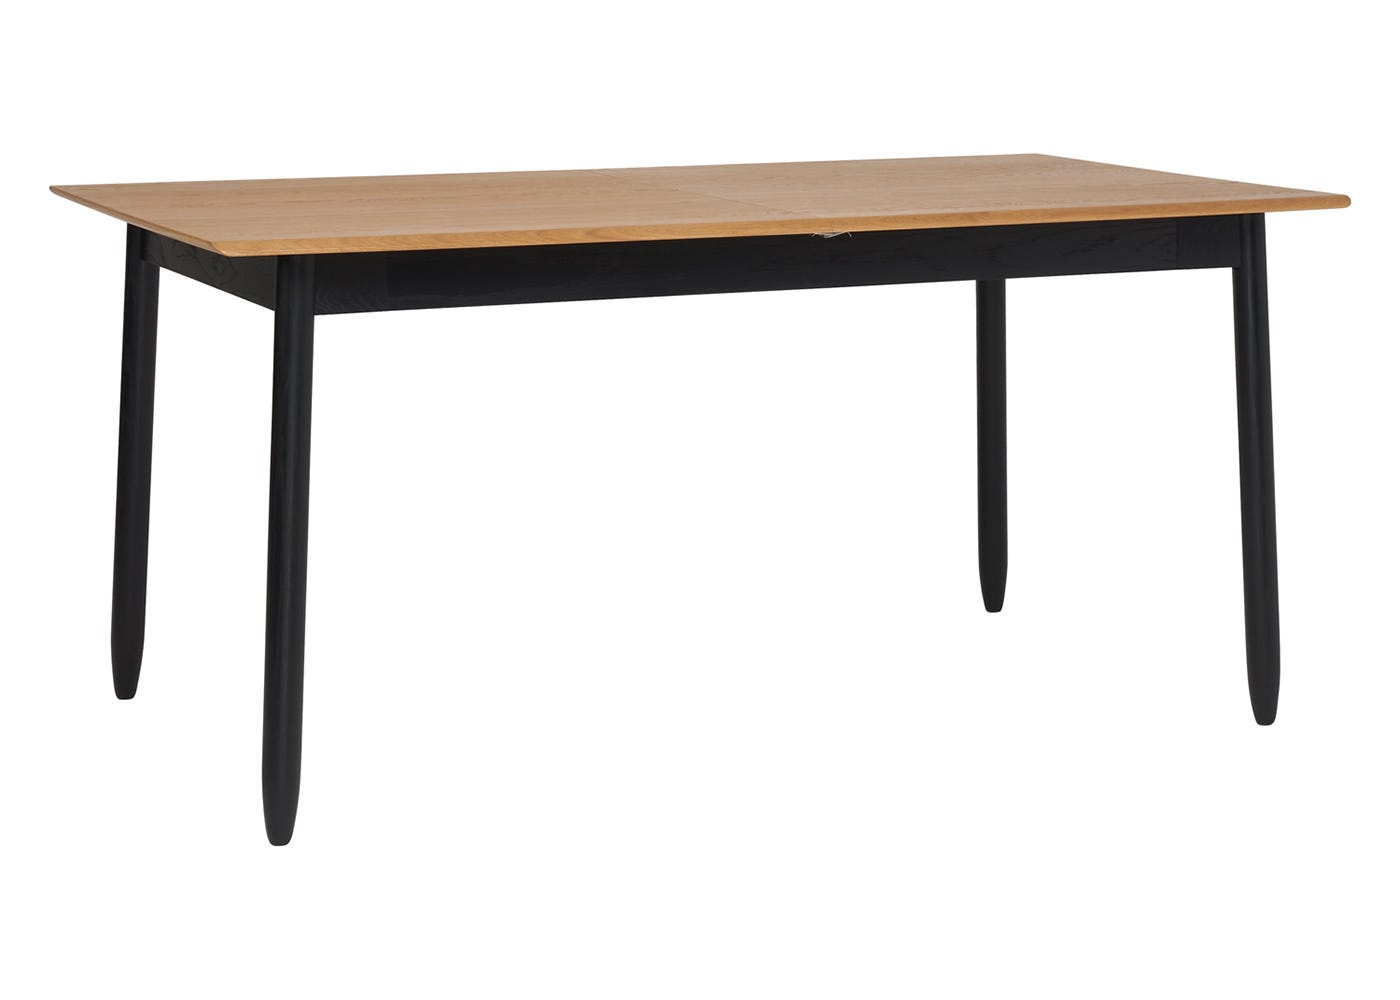 Monza Dining Table - Corner View - Not Extended